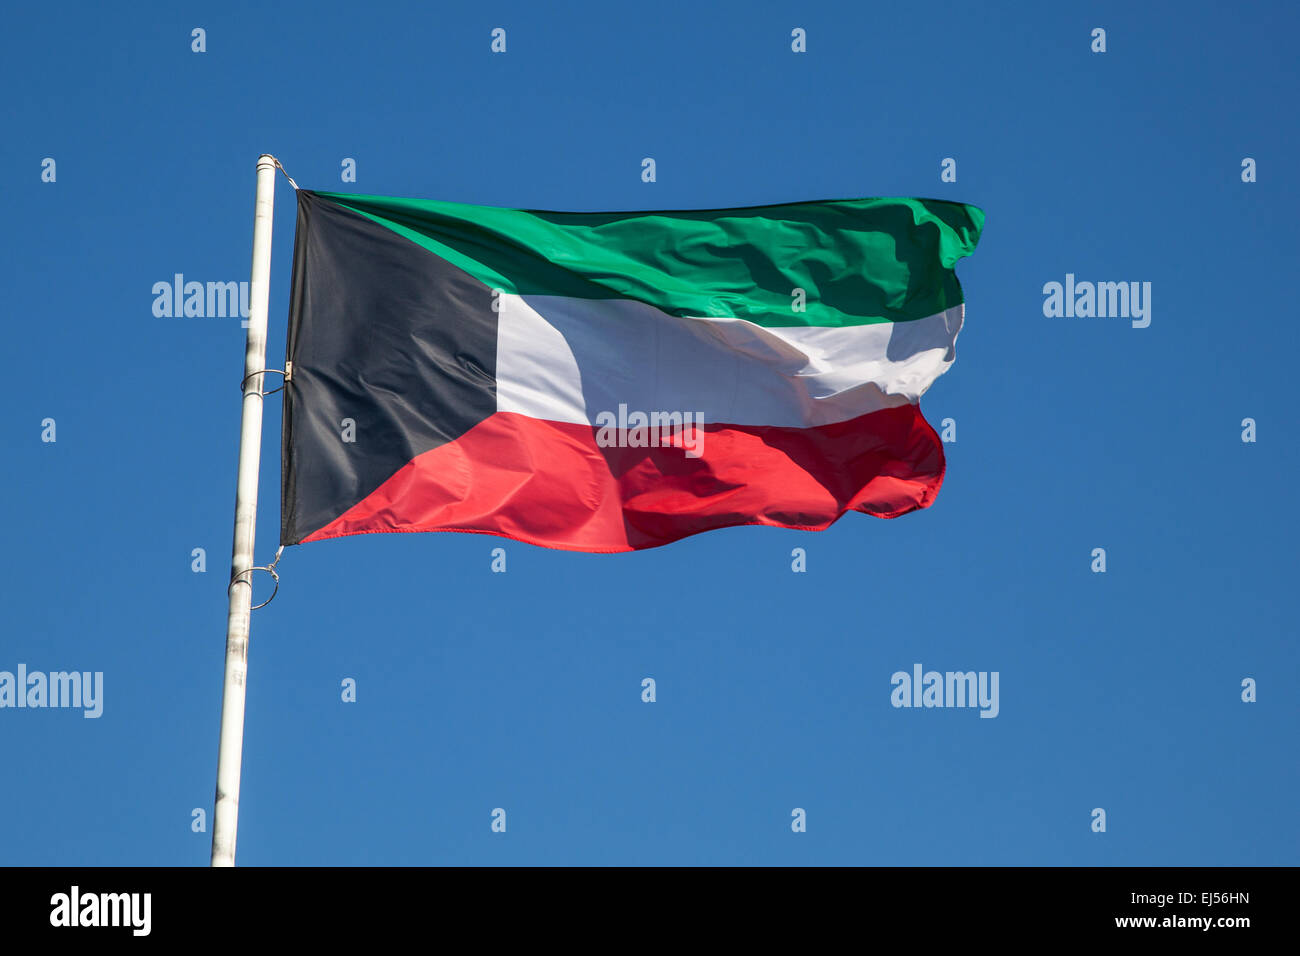 National Flag of Kuwait, Middle East - Stock Image